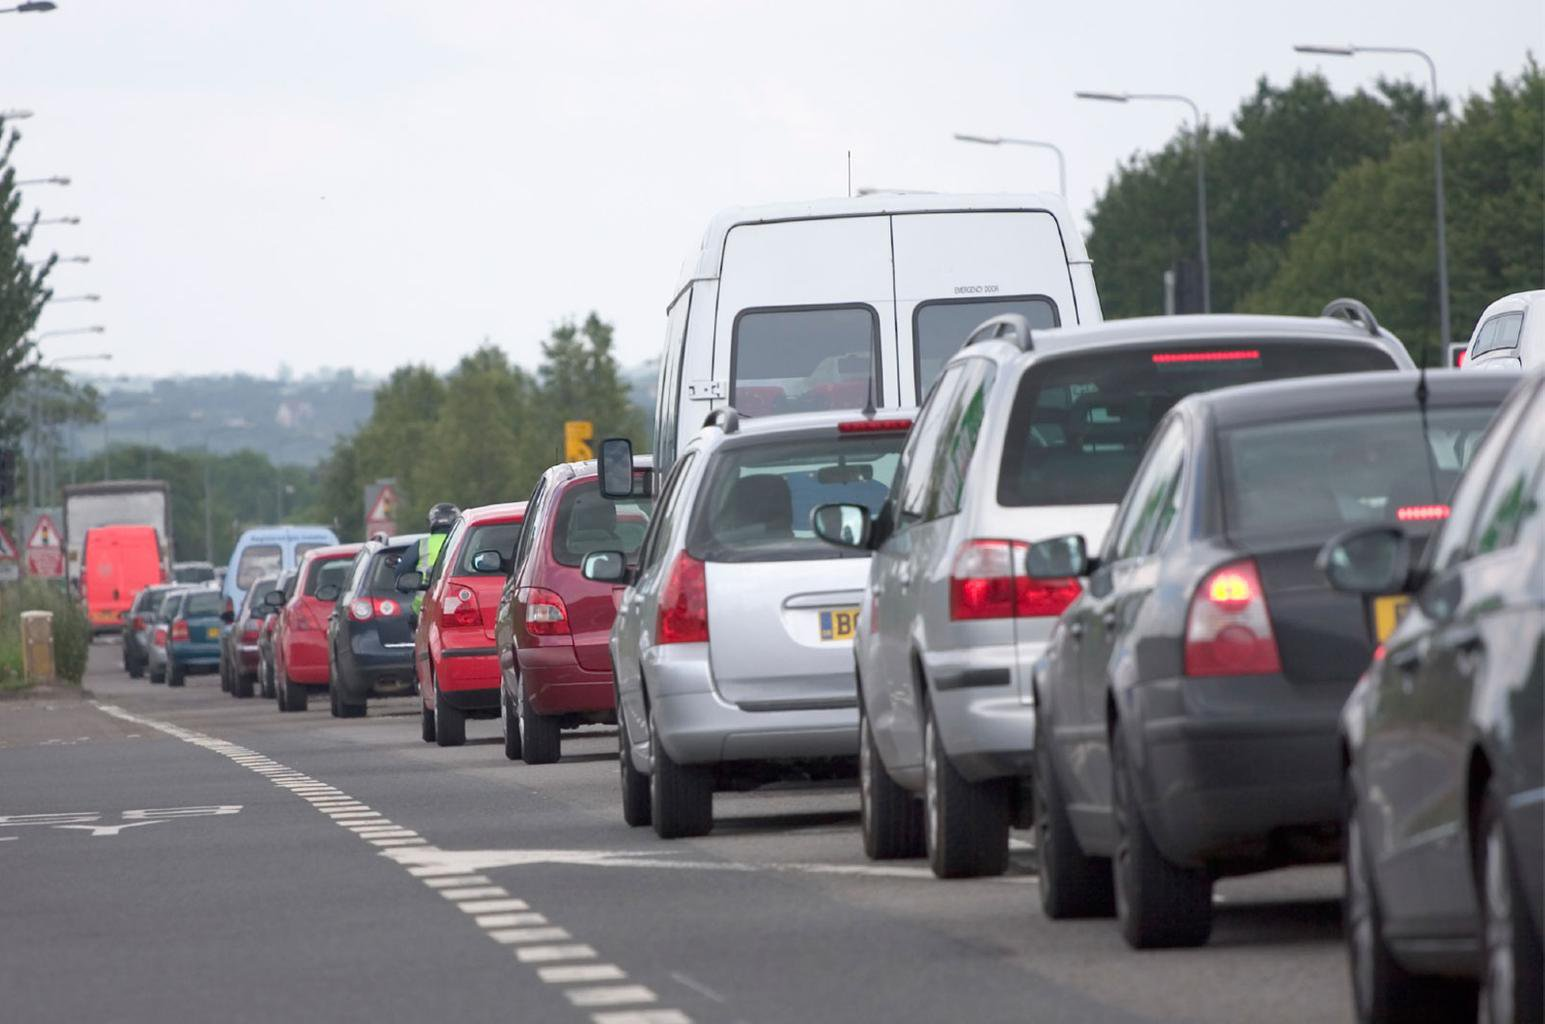 Councils win £4 million to speed up journeys